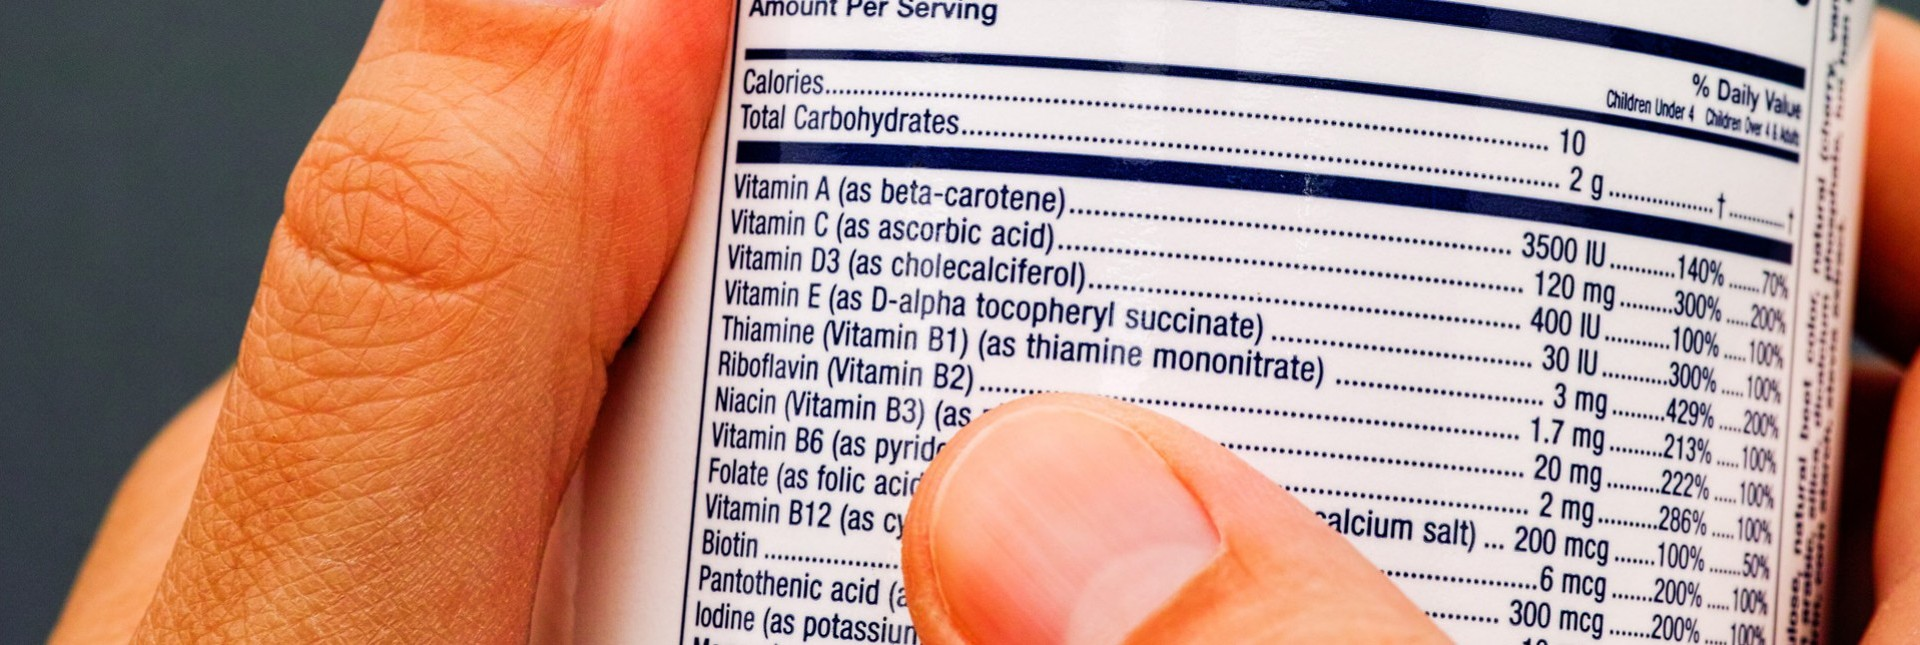 Vitamin Labels | What Do They Mean?